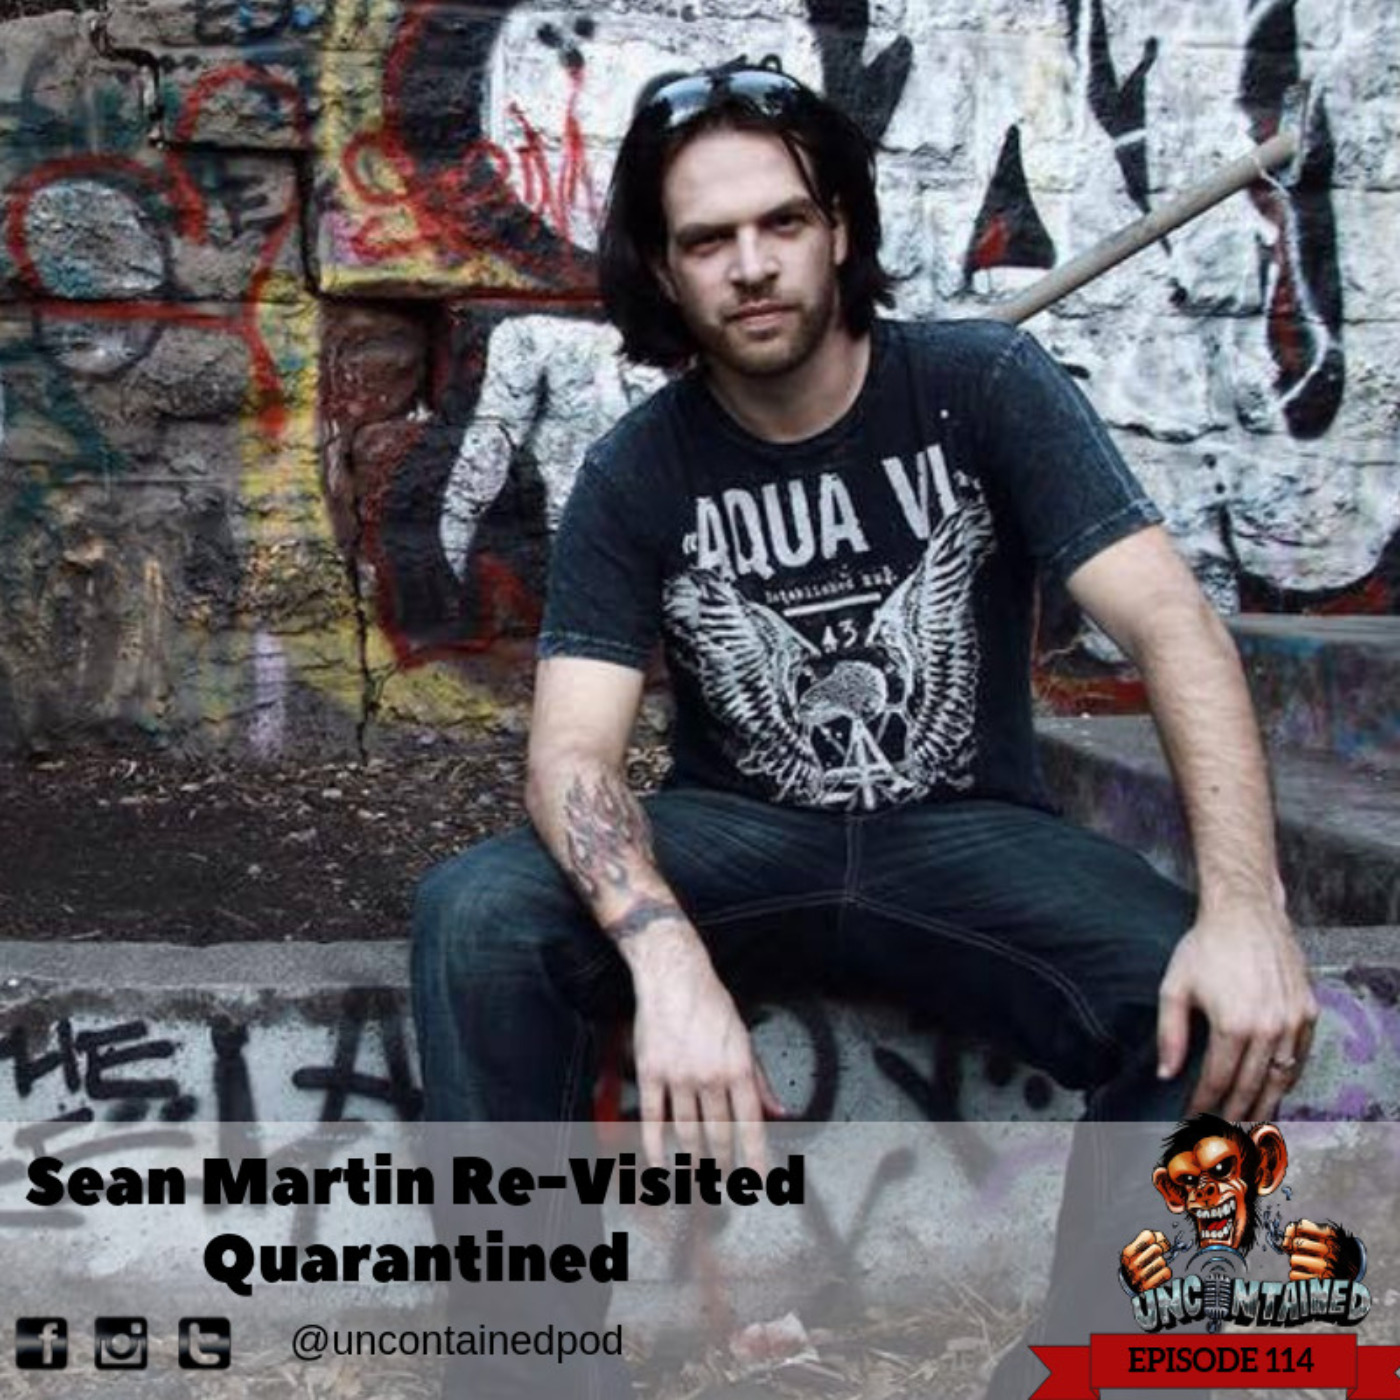 Re-Visited Episode 114  Sean Martin - The Quarantined